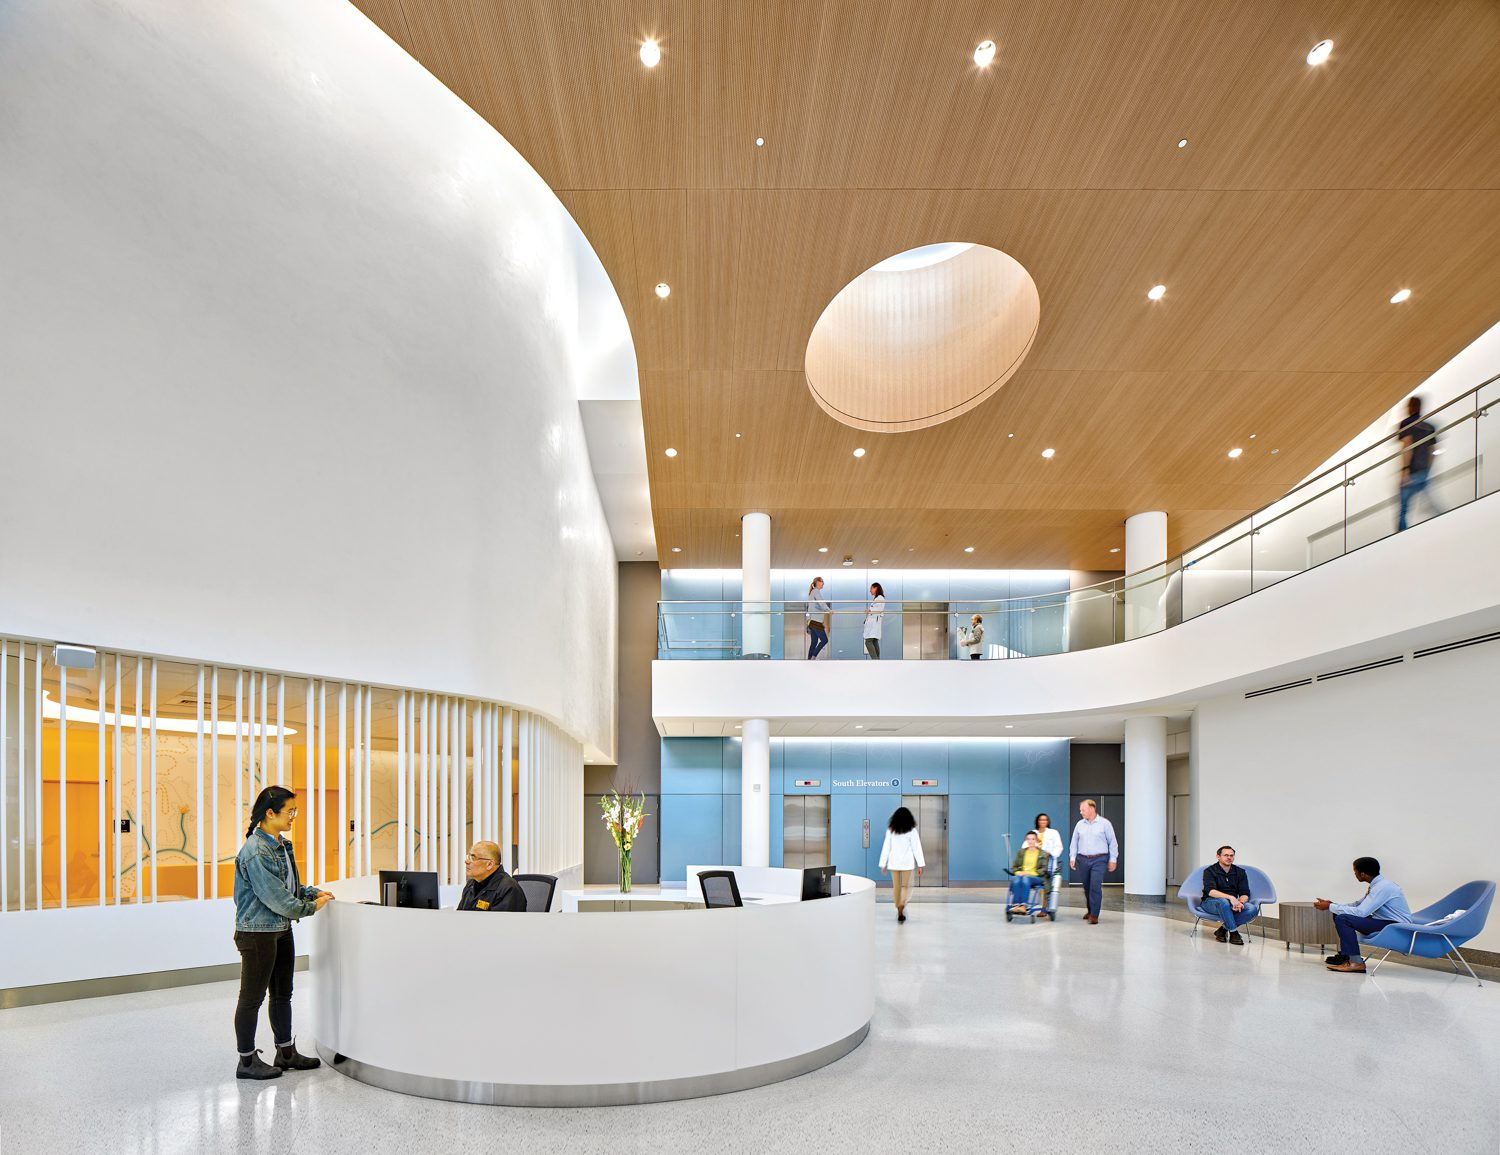 Reception area with a curved white desk and ceiling dotted with small lights.